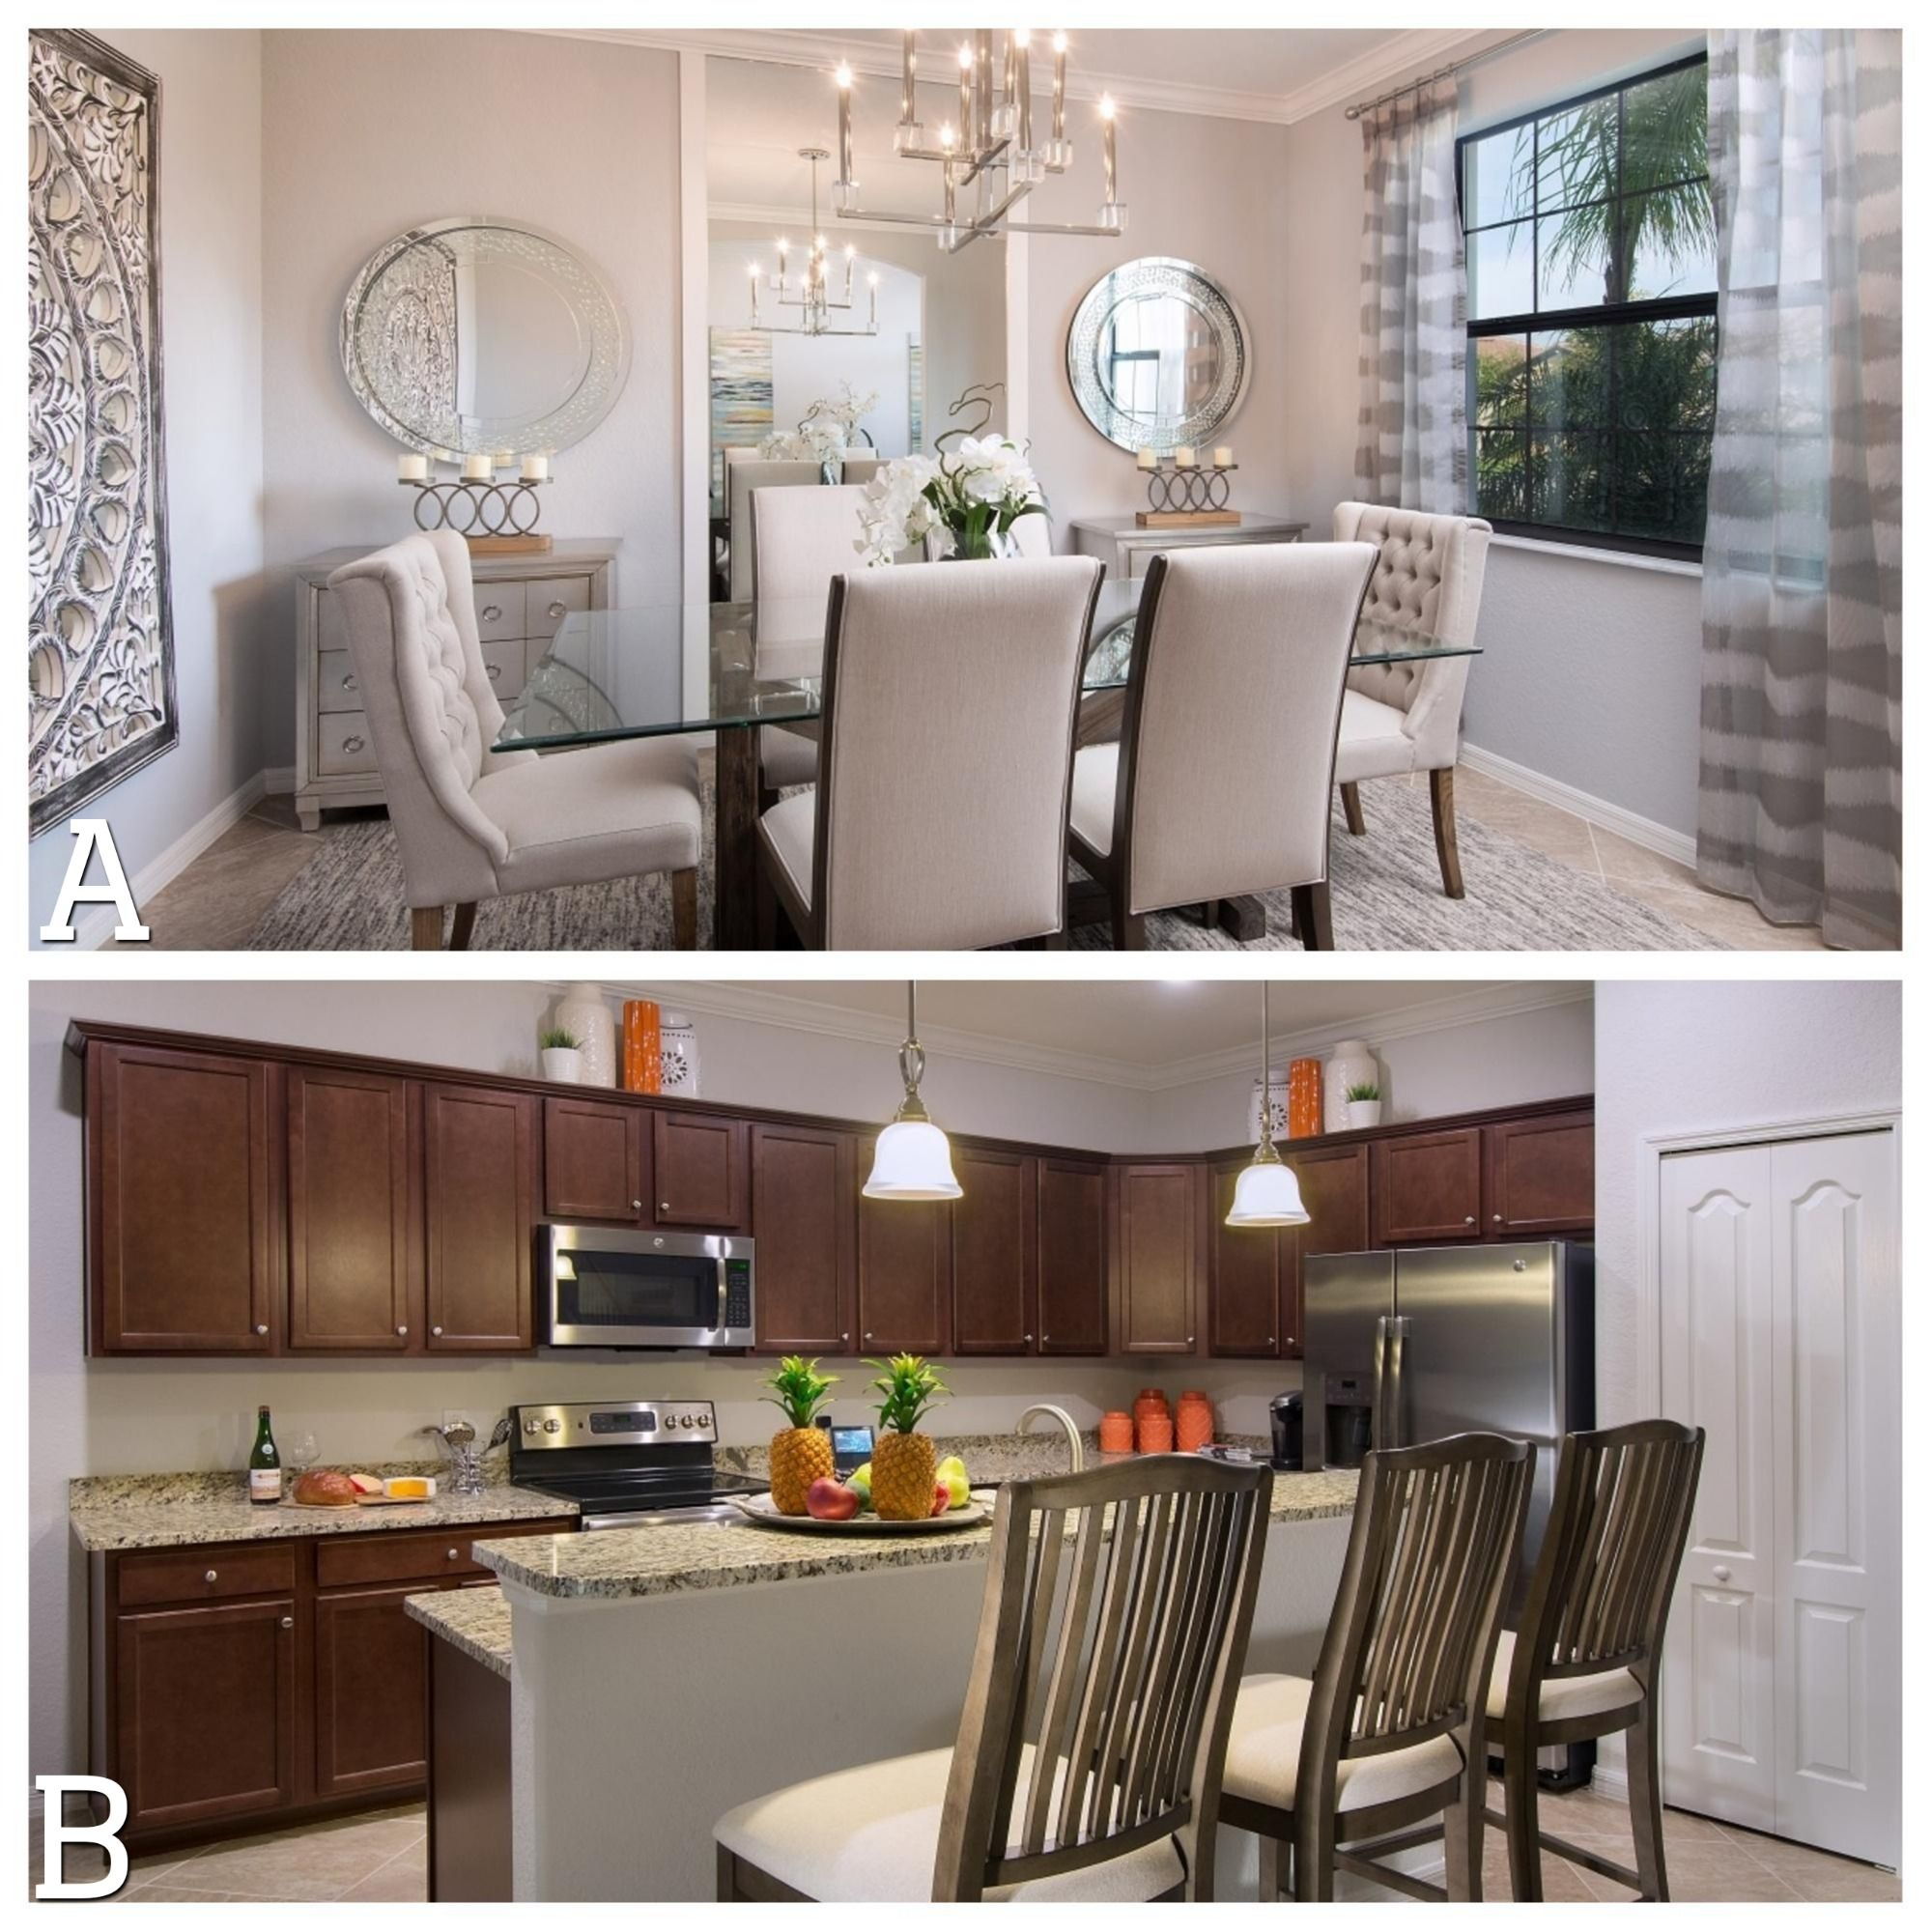 Do you prefer a more formal or casual dining setting? A ...